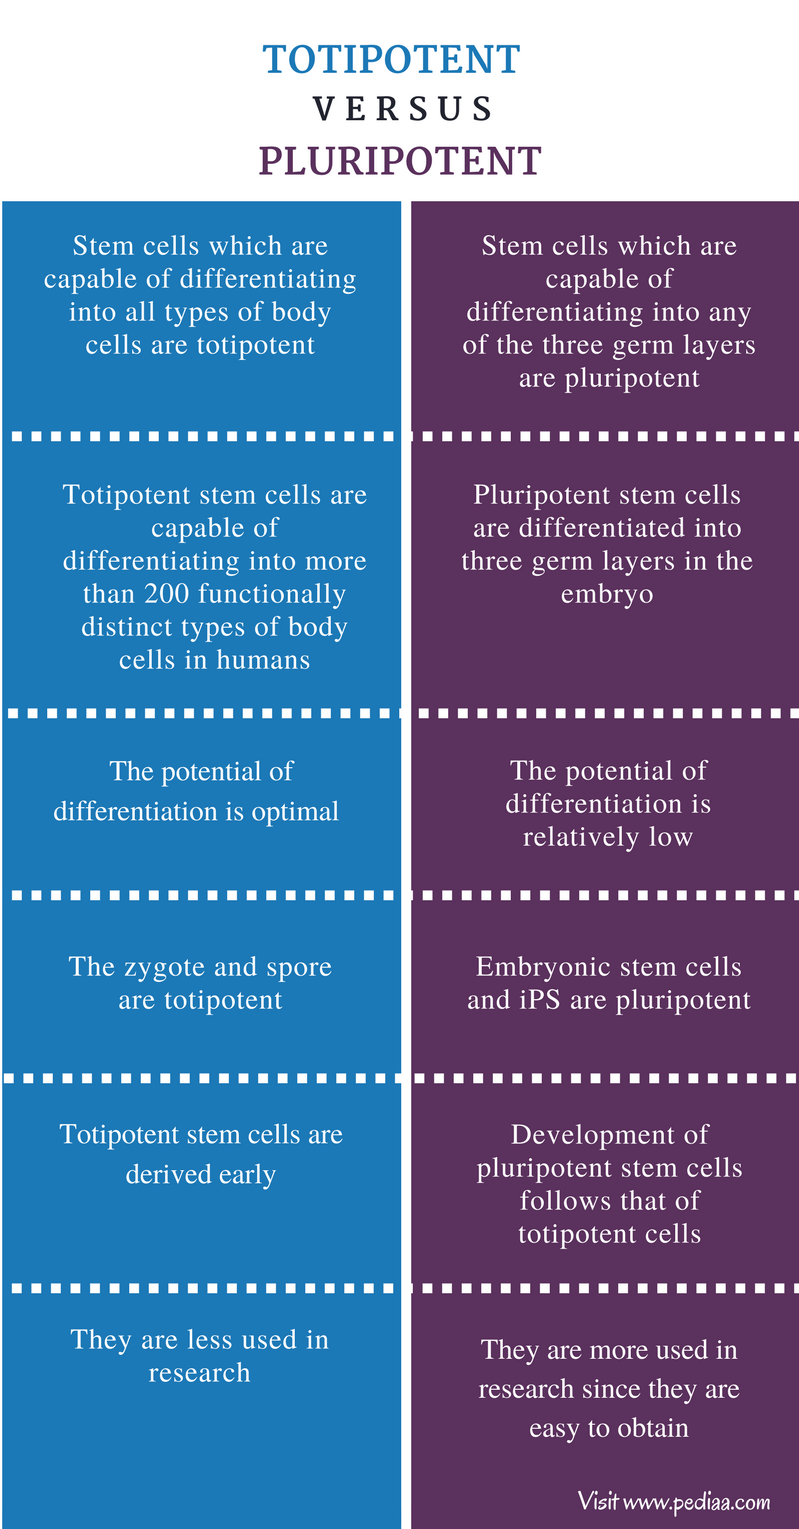 Difference Between Totipotent and Pluripotent - Comparison Summary